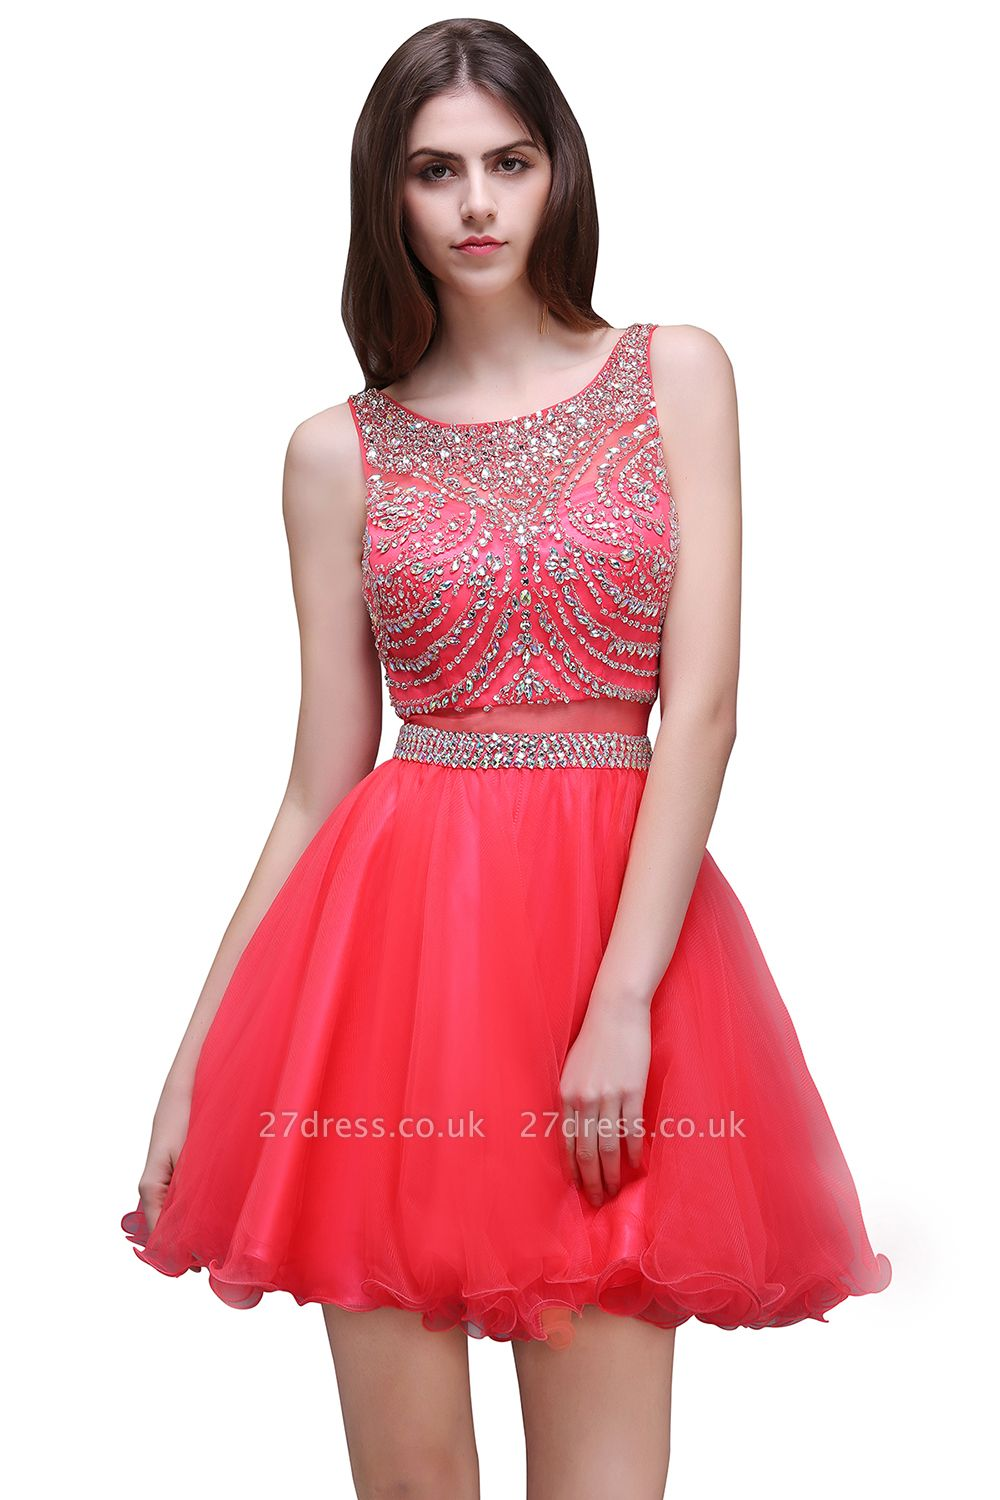 Applique Sleeveless Crystal Beads Cute A-Line Rose Short Evening Dress UKes UK